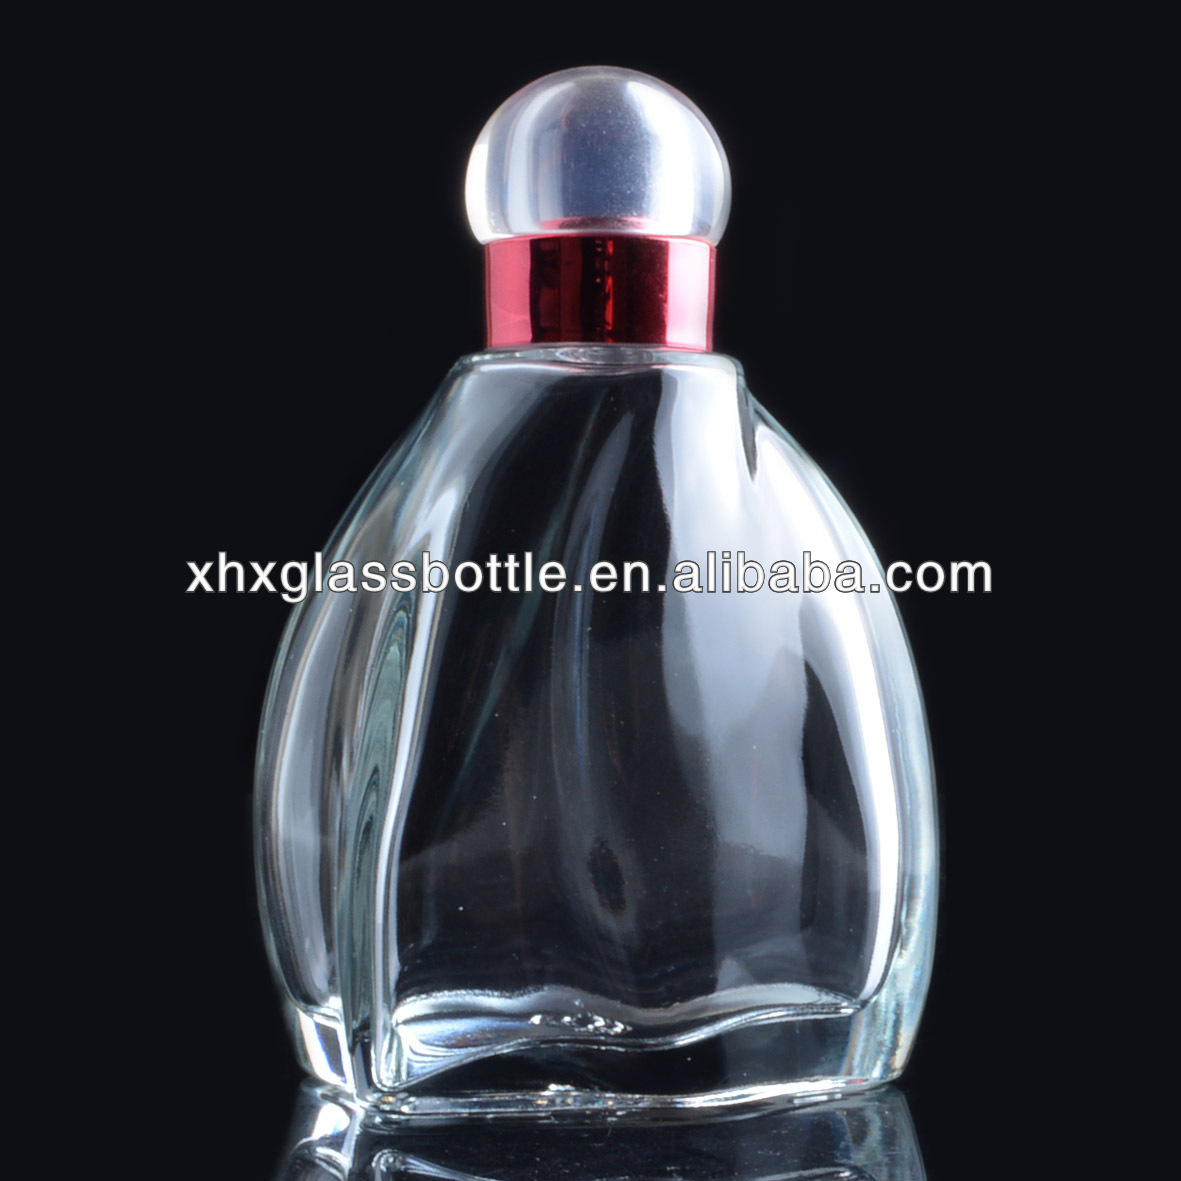 100Ml Special Shape Empty Egyptian Perfume Bottles For Women Personal Care Cosmetic